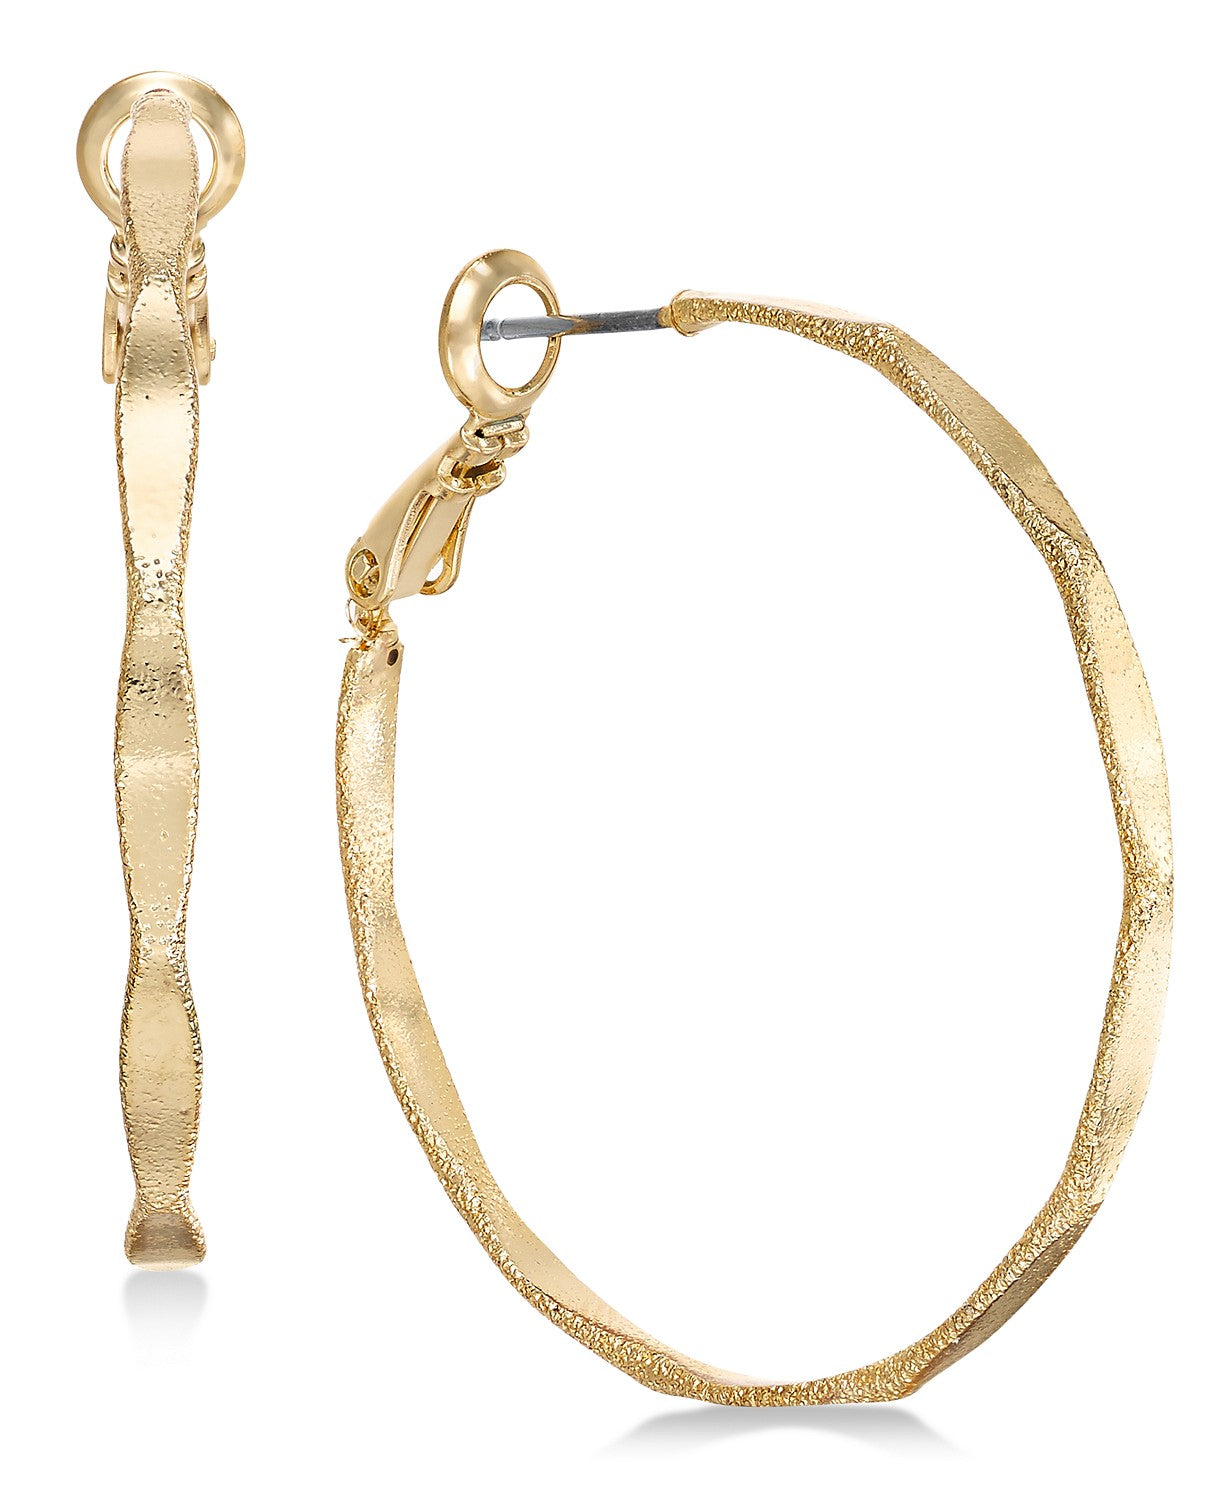 Charter Club Gold-Tone Thin Hoop Earrings Gold